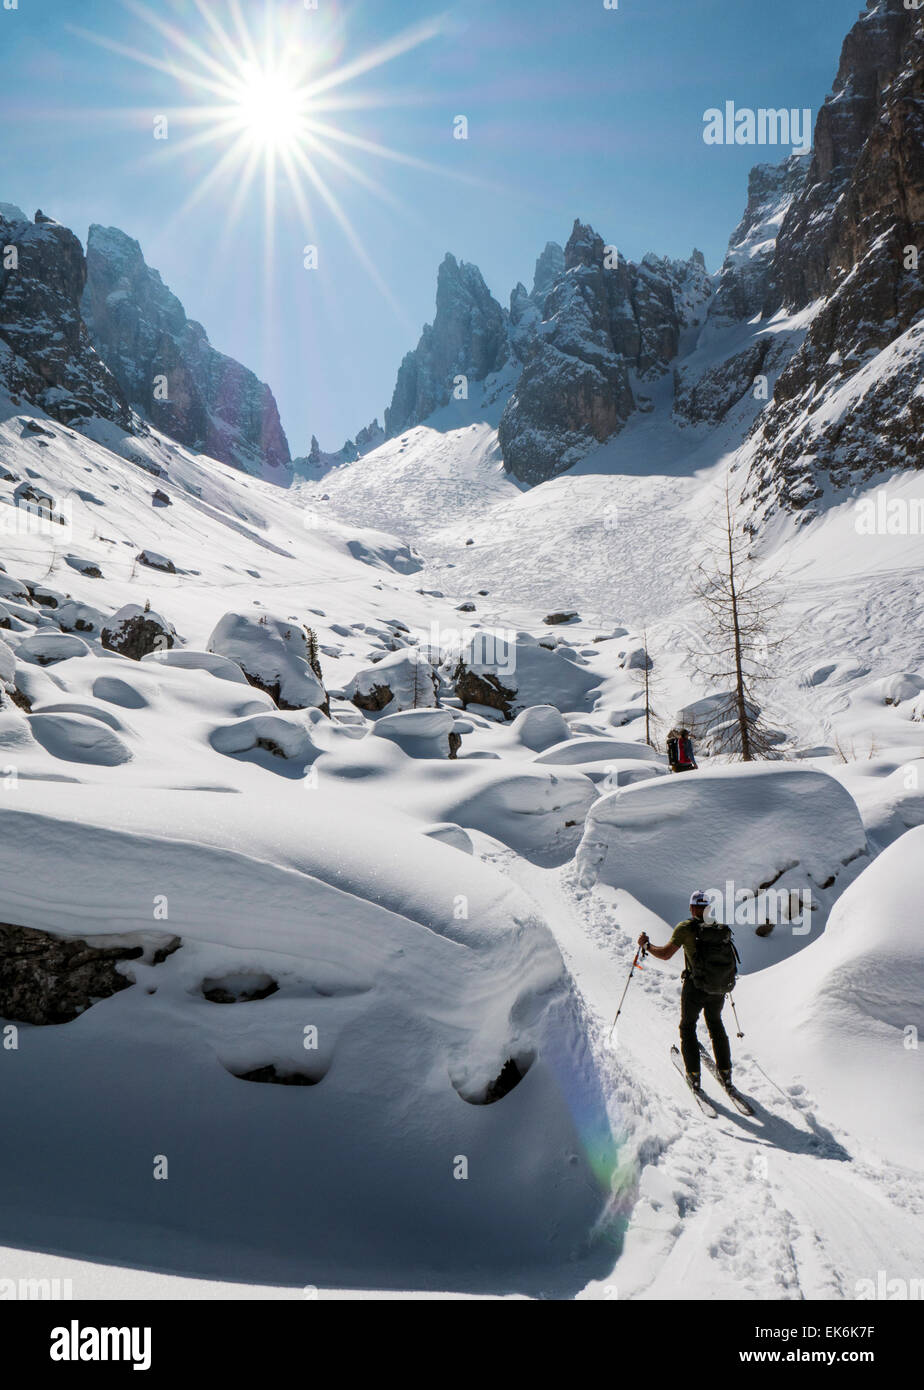 Backcountry skiers, northeast of Cortina, Dolomite Mountains, Alps, Italy - Stock Image